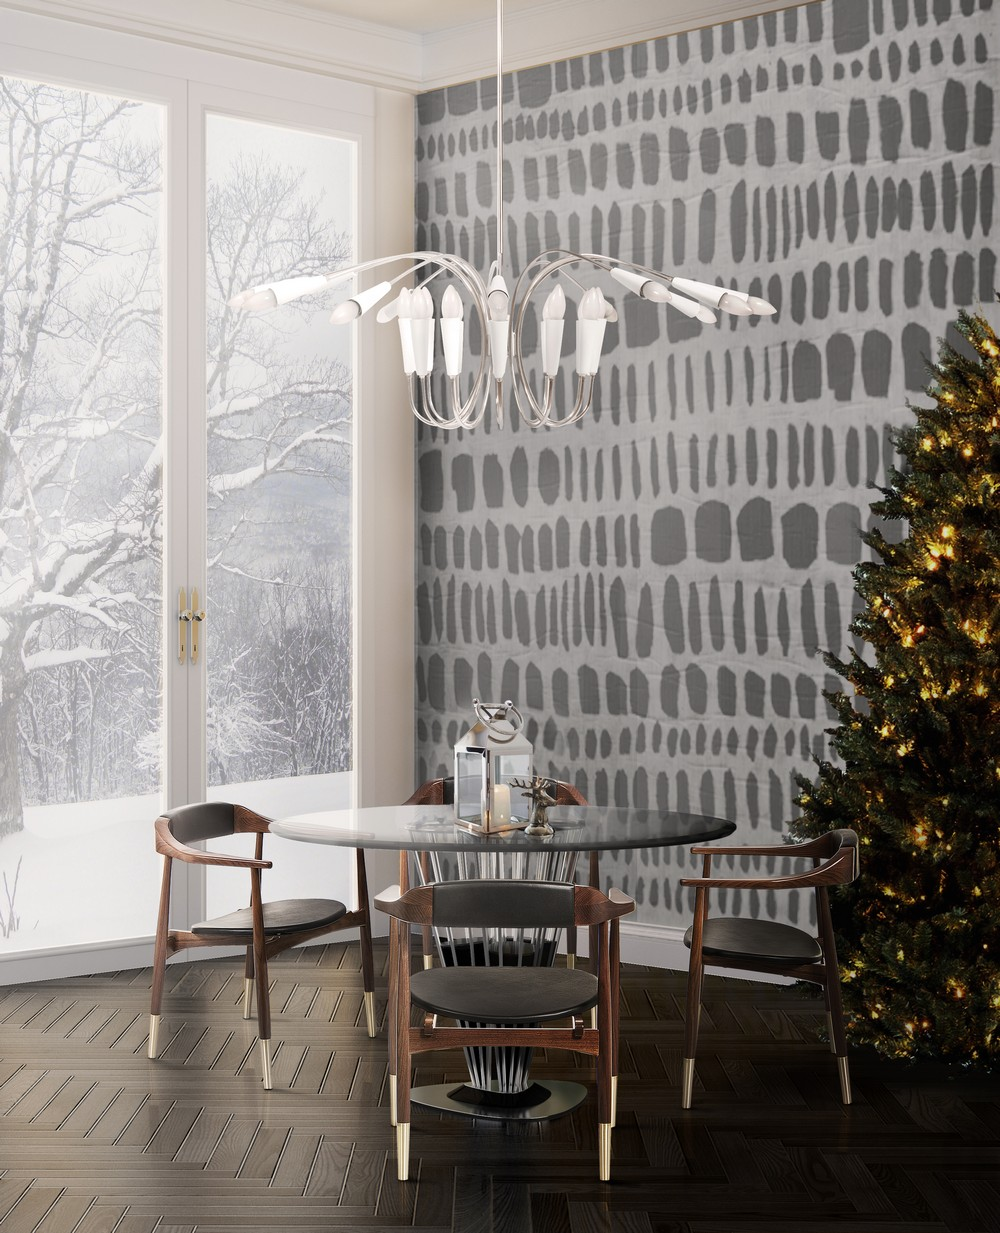 Christmas Is Here: Dining Room Ideas For An Unforgettable Celebration dining room ideas Christmas Is Here: Dining Room Ideas For An Unforgettable Celebration aretha chandelier ambience 02 christmas HR